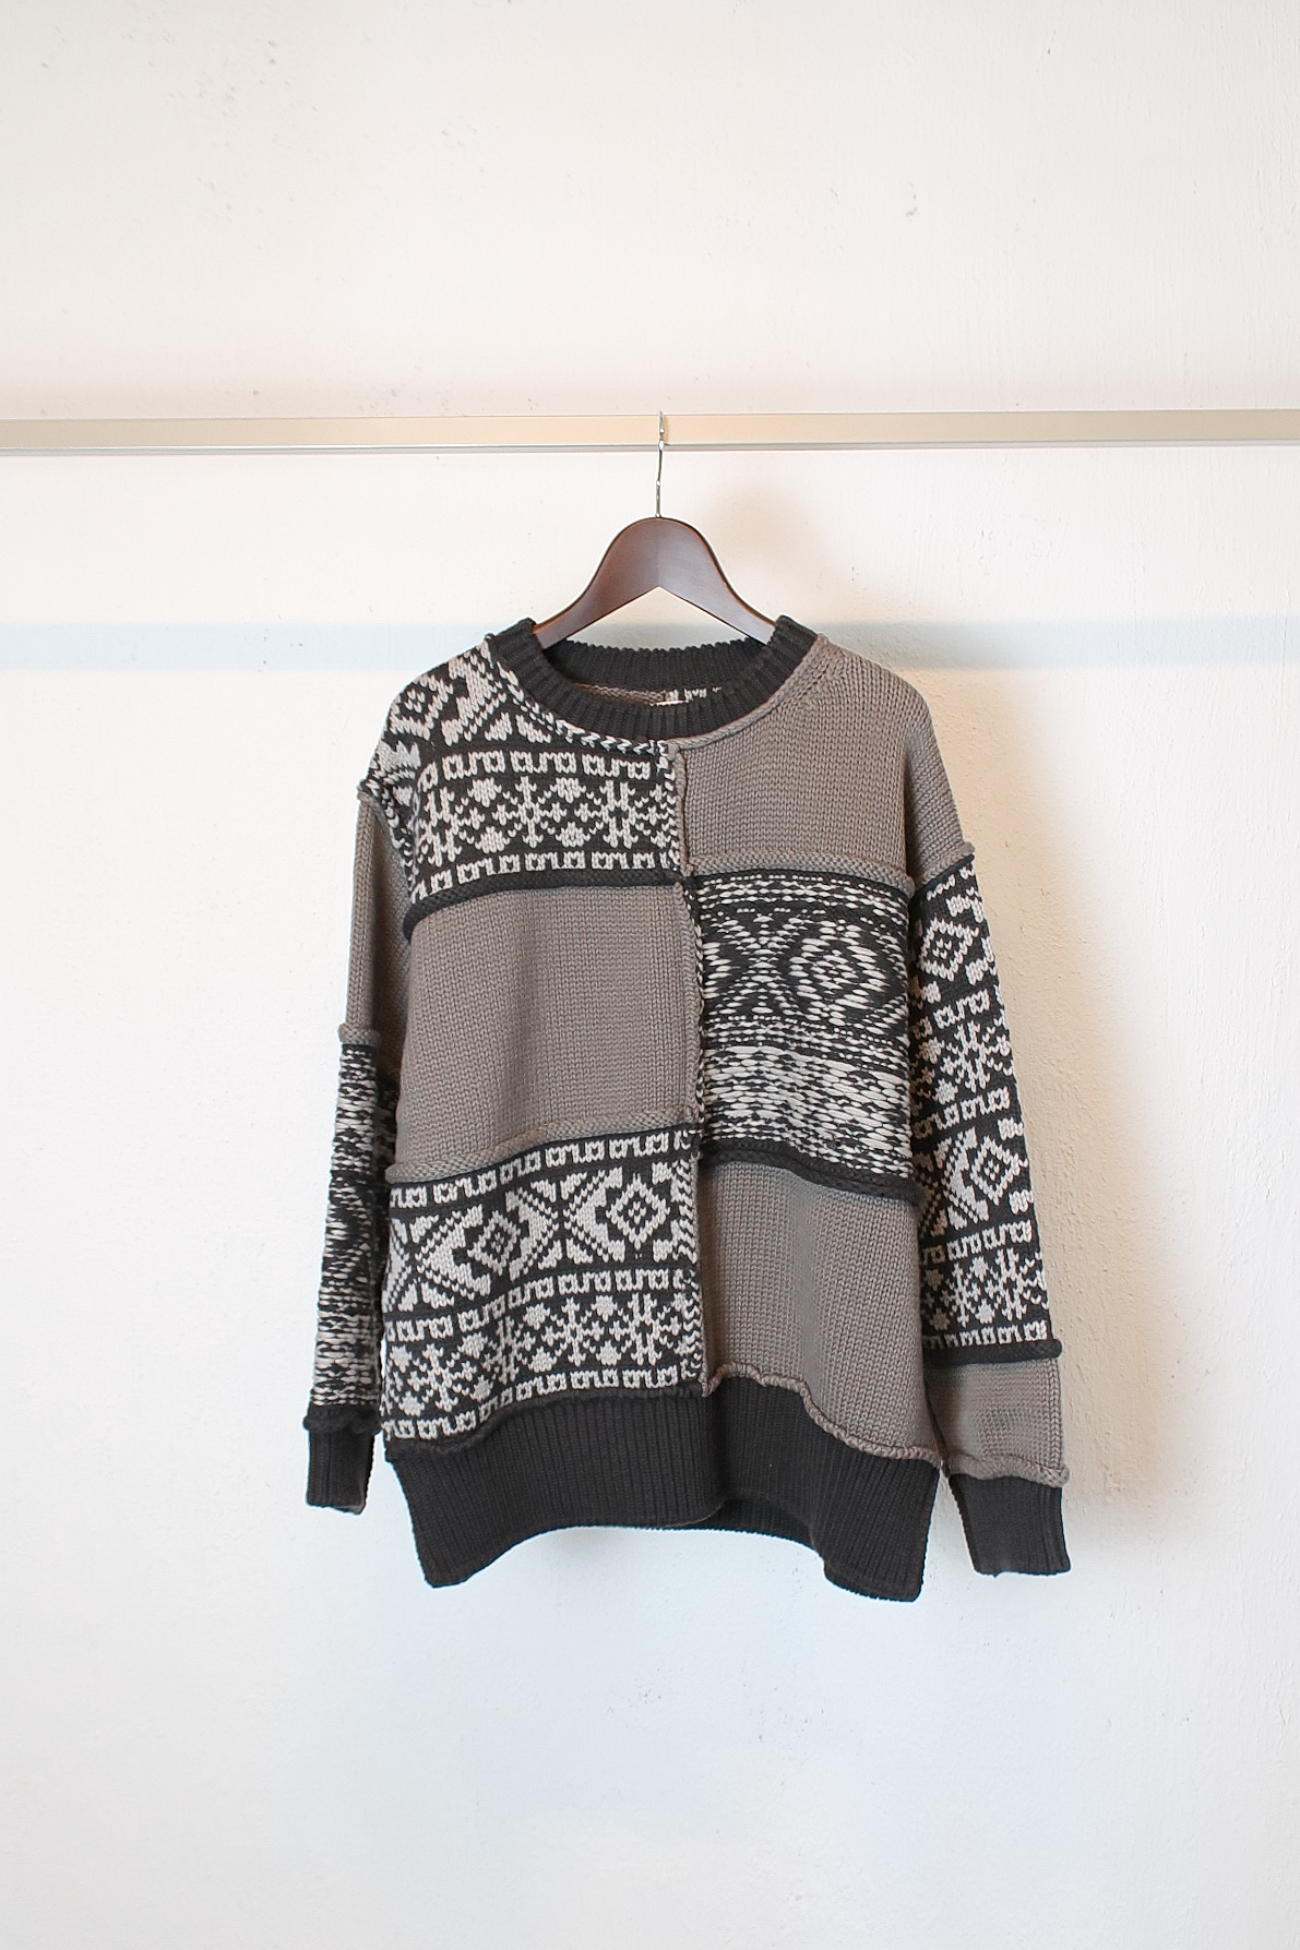 [Name.] Nordic Patchwork Knit Sweater - Brown